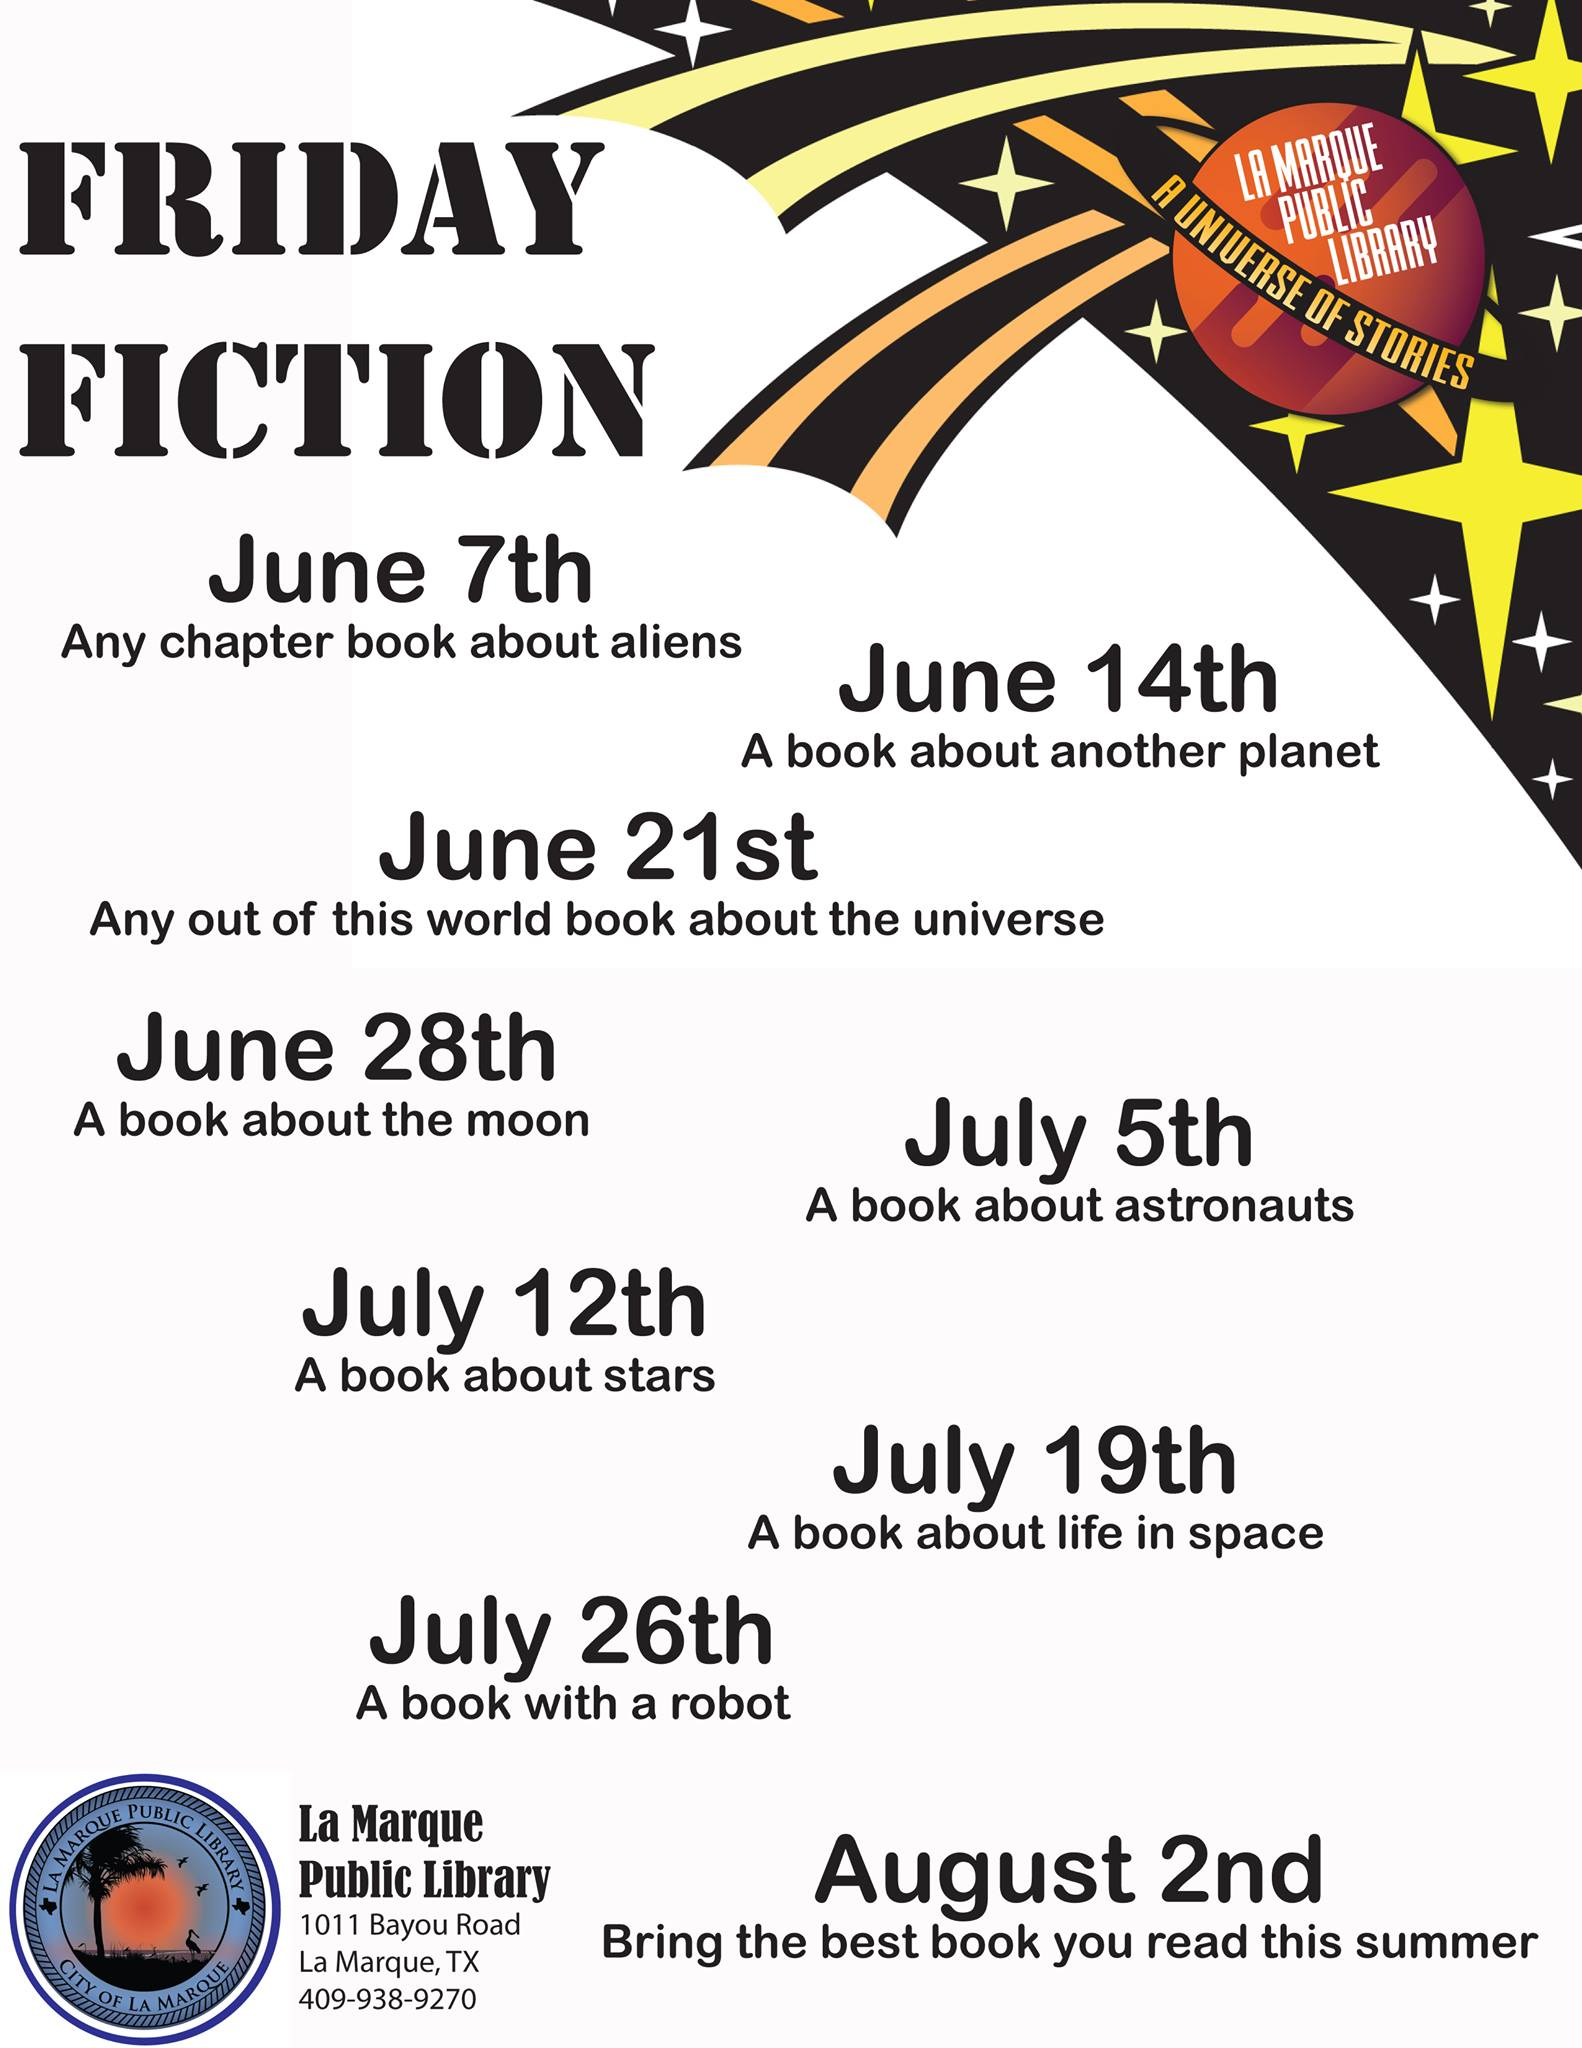 Friday Fiction with La Marque Public Library with dates and topics